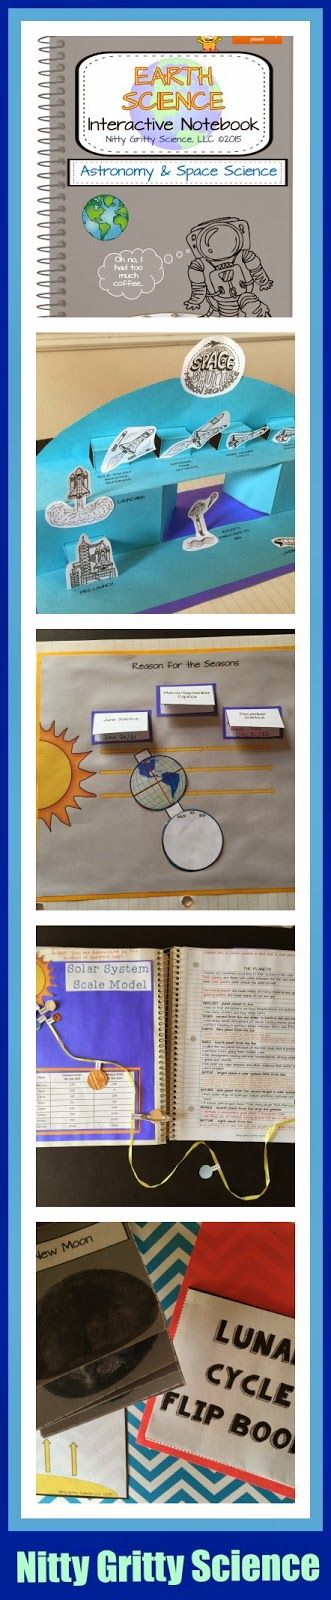 """Introducing another """"out-of-this-world"""" chapter in my Earth Science Interactive Notebook series: ASTRONOMY AND SPACE SCIENCE.  One of my favorite chapters to create - I know you and your students are going to have a blast with these engaging and original science interactive notebook activities."""